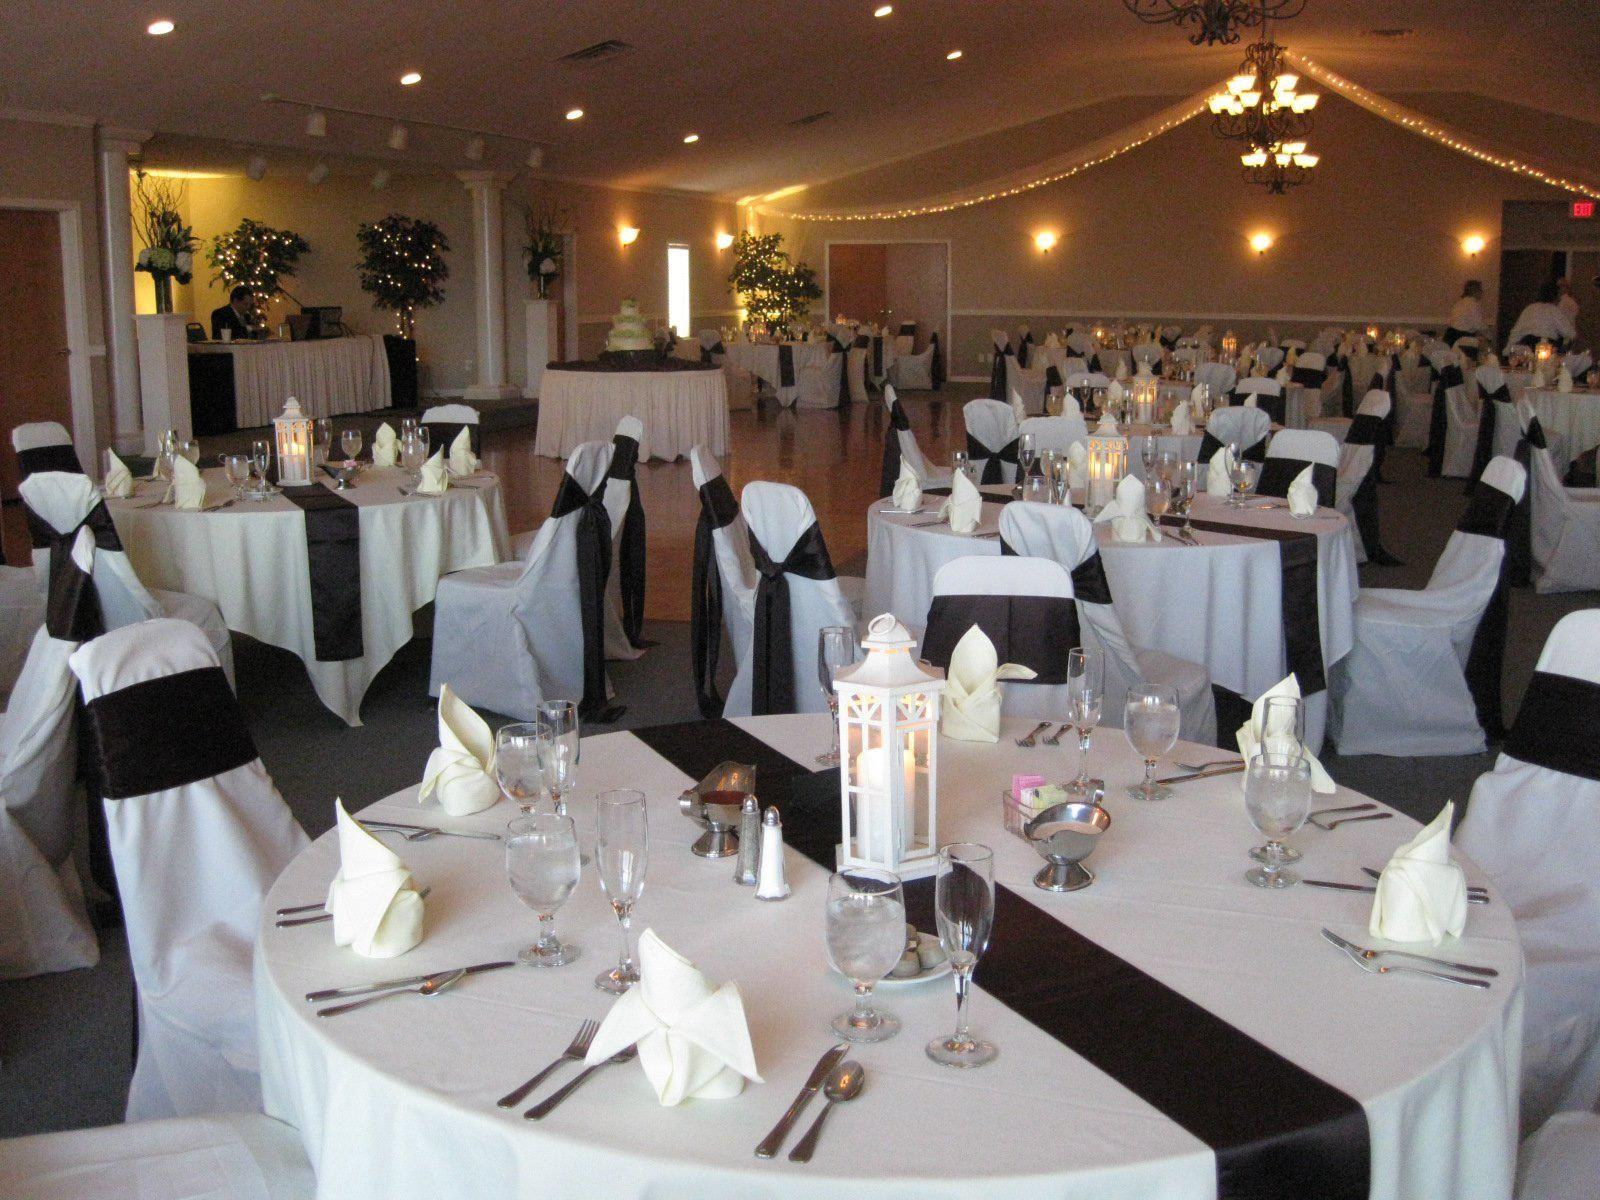 Anna Chair Cover & Wedding Linens Rental Burnaby Bc Peg Perego Prima Pappa Newborn High White Table With Black Satin Runner Covers Sash And Napkins